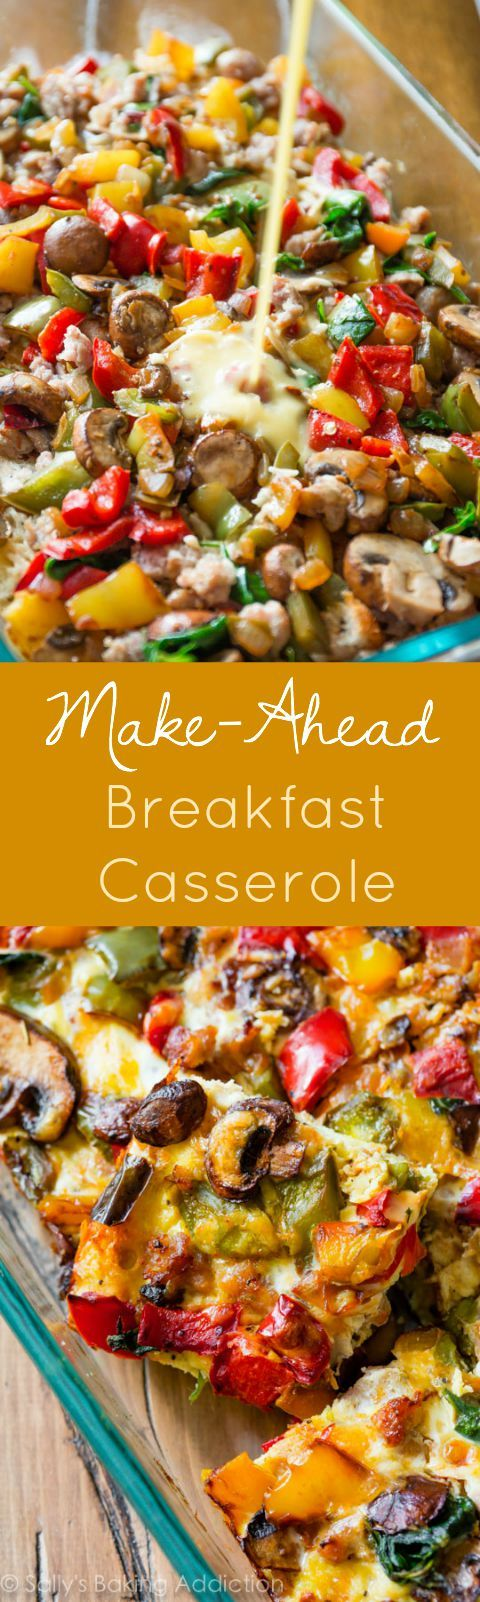 Easy breakfast casserole you can freeze or make the night before! Use your favorite vegetables, meats, and cheese. Recipe on sallysbakingaddic... #breakfast #recipes #brunch #easy #recipe